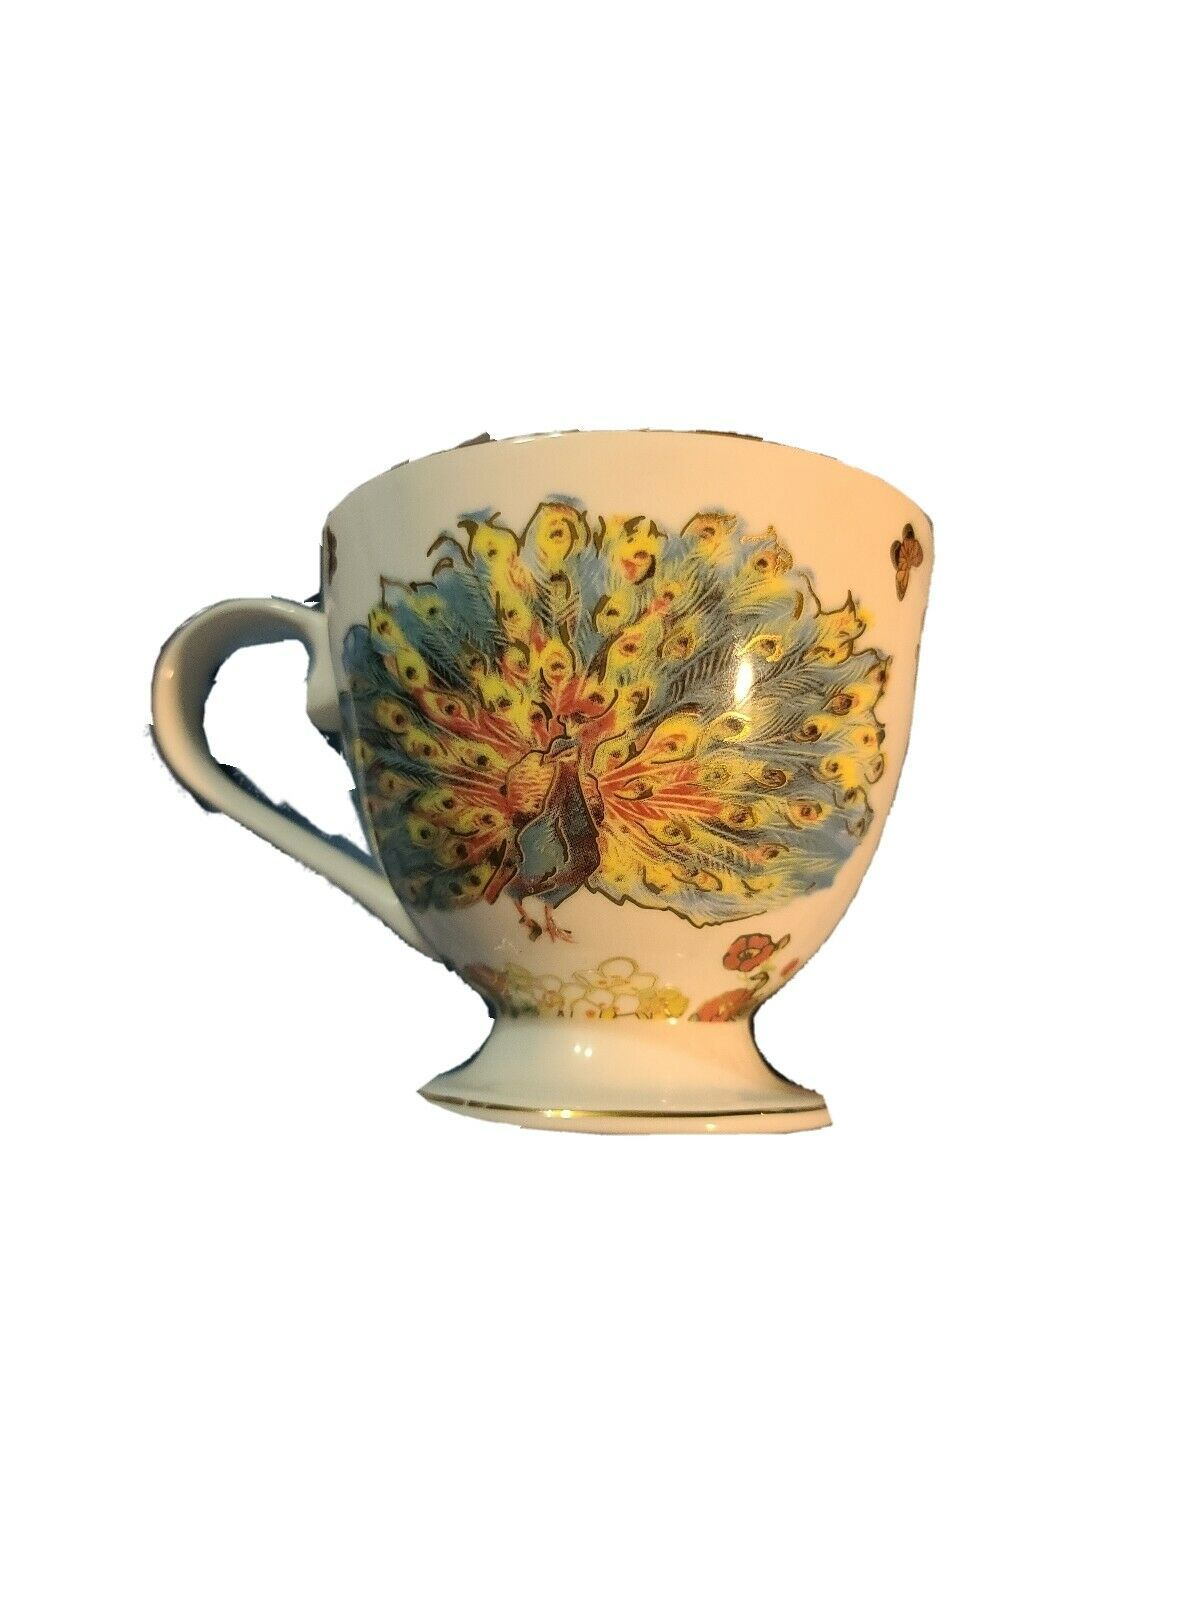 Footed Coffee Tea Mug Cup W/ Gold Accents Flamingos And Flowers, Grace's Teaware - $11.90